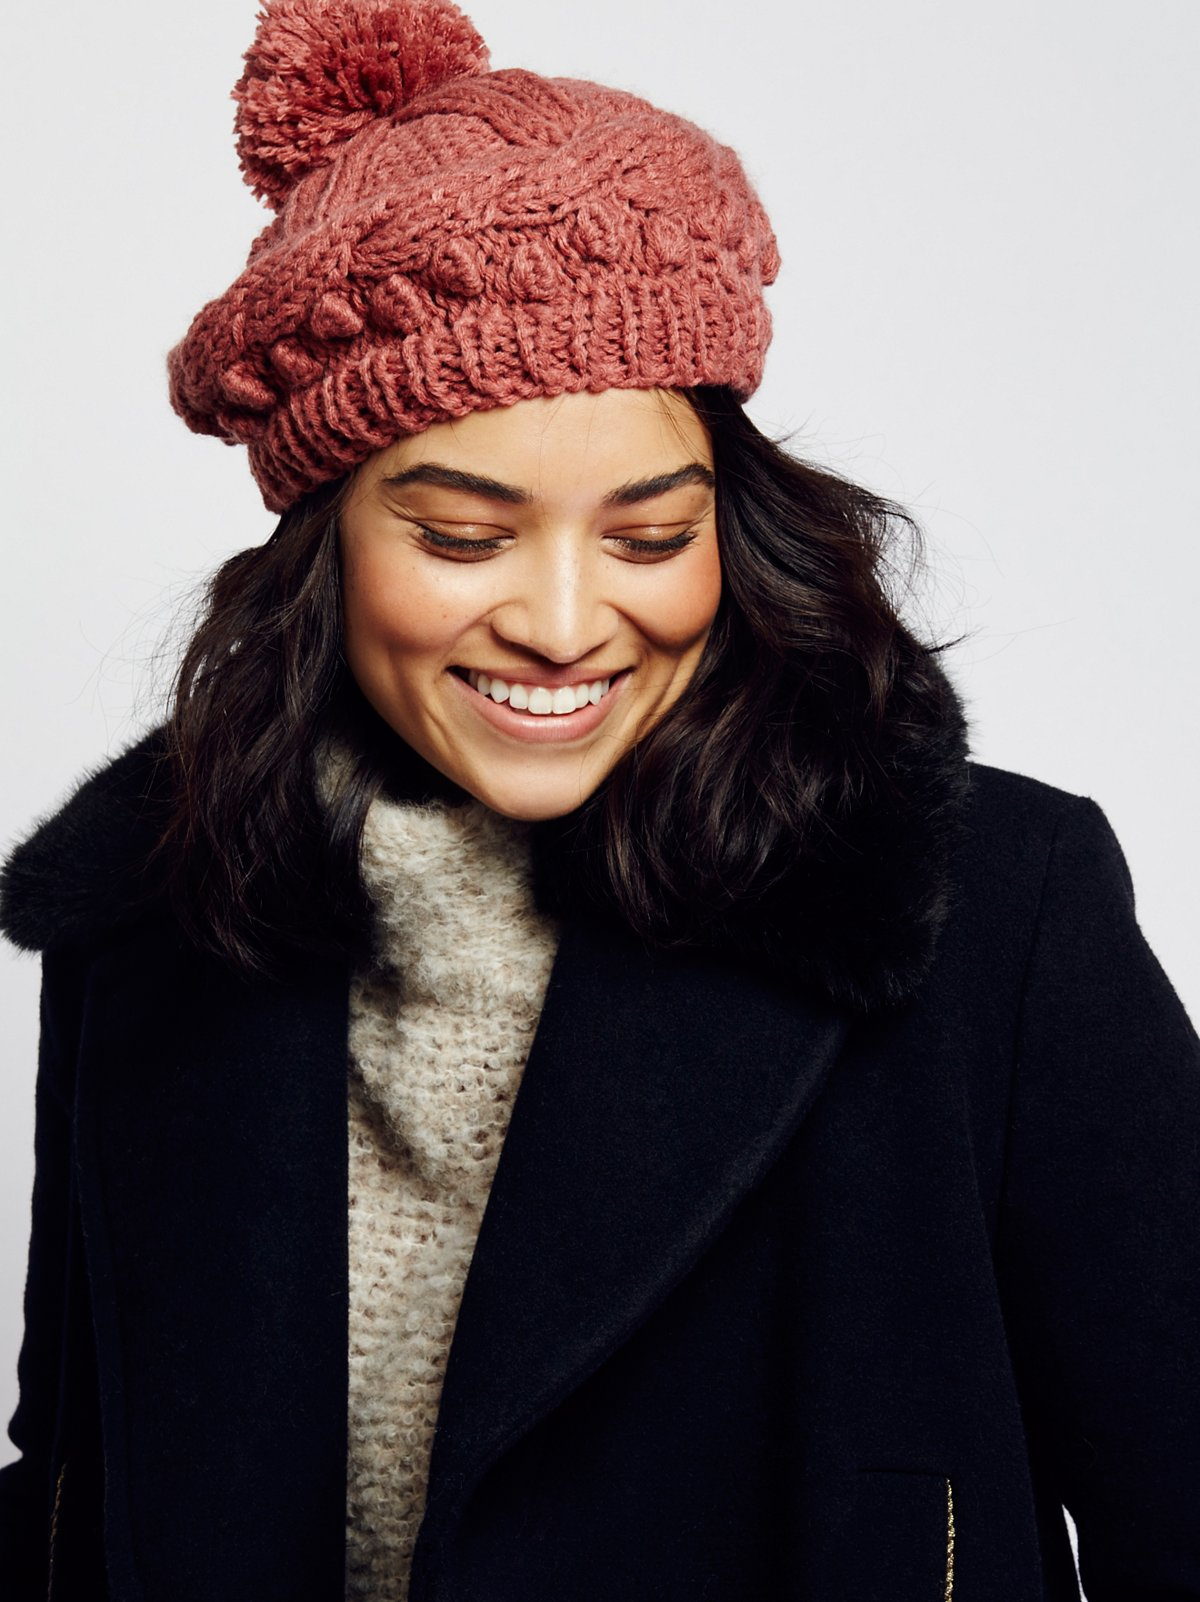 Bobble Knit Beret